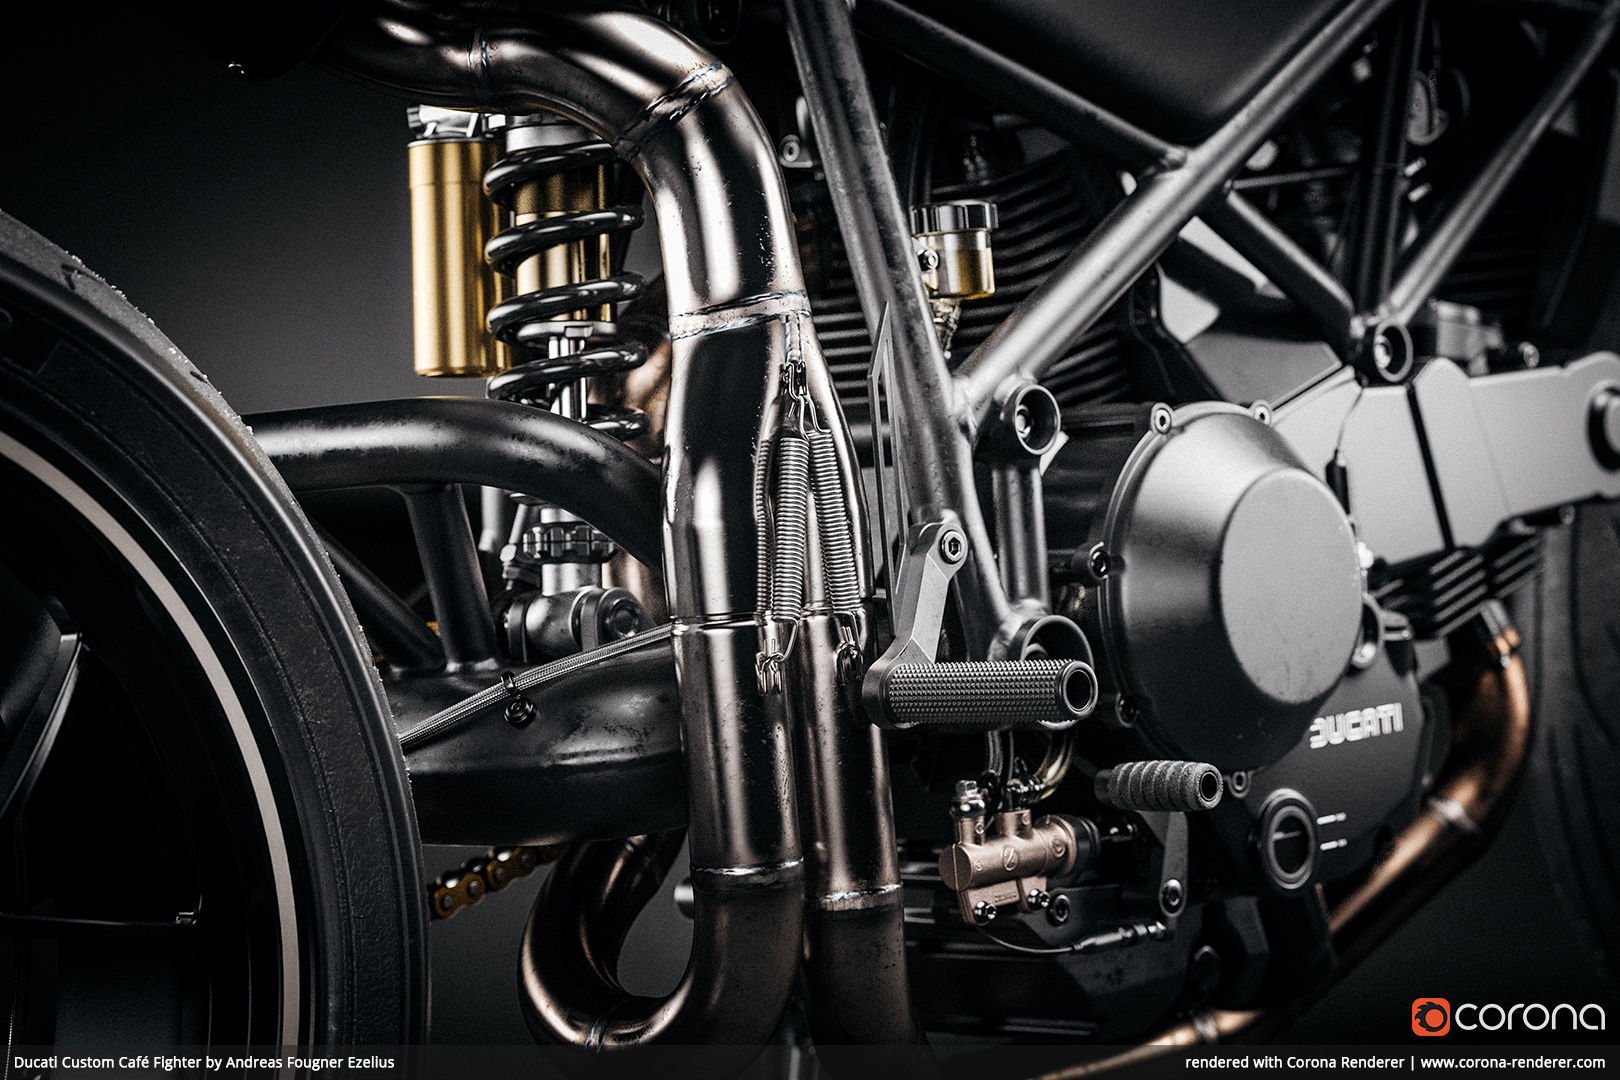 Ducati Custom Café Fighter by Andreas Fougner Ezelius